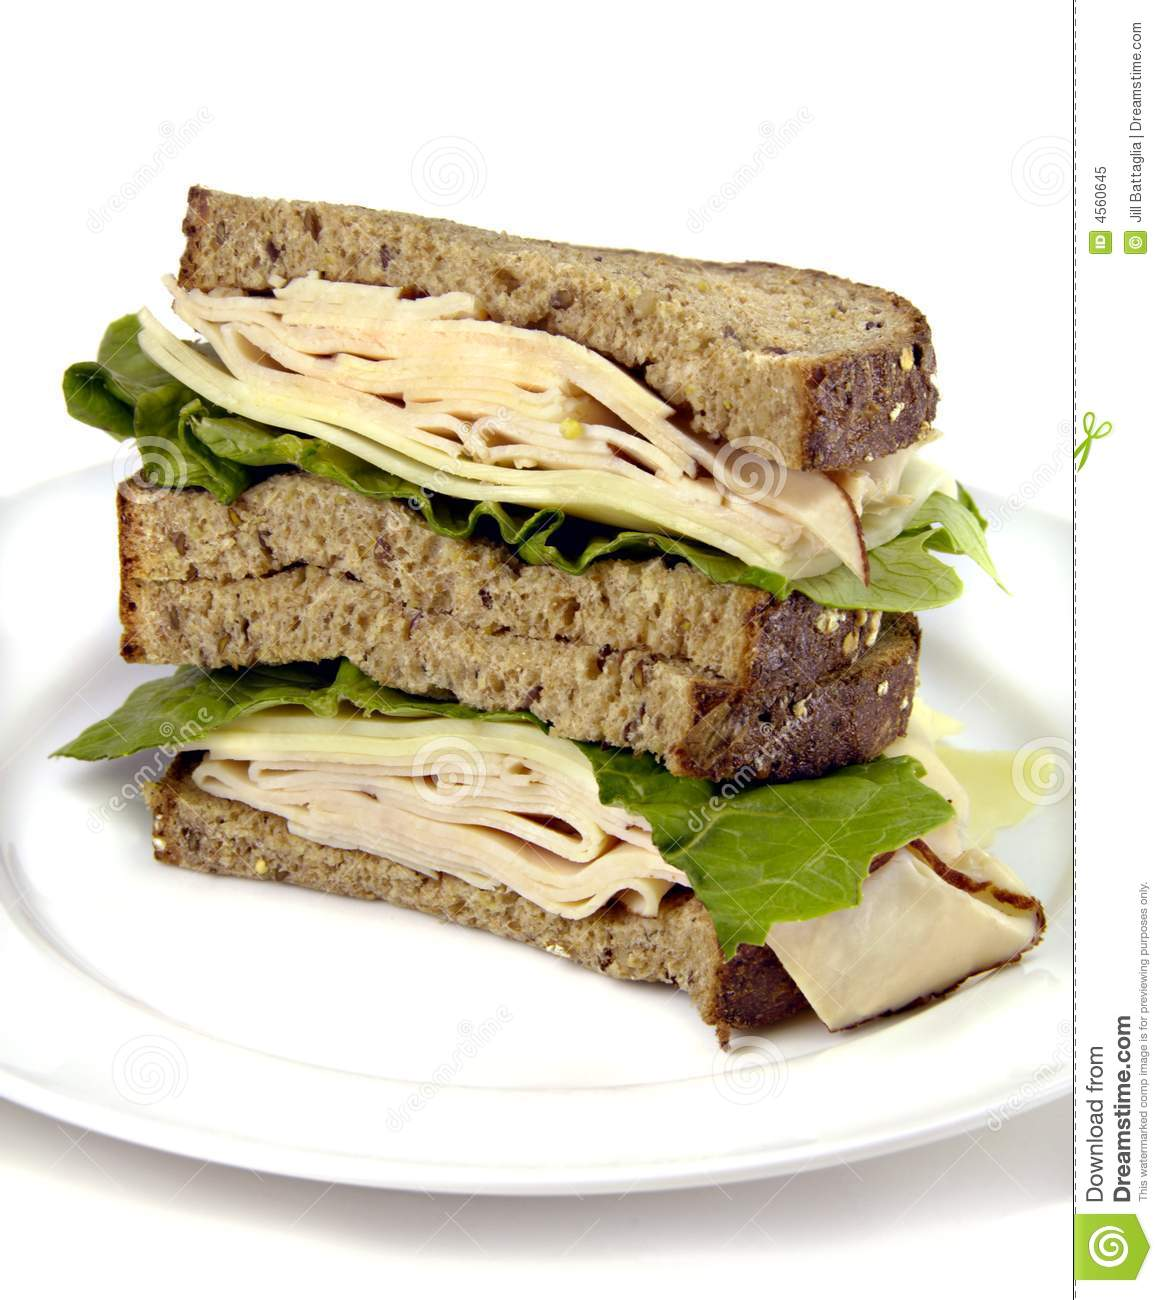 Turkey Sandwich On Whole Grain Bread Royalty Free Stock Photo - Image ...